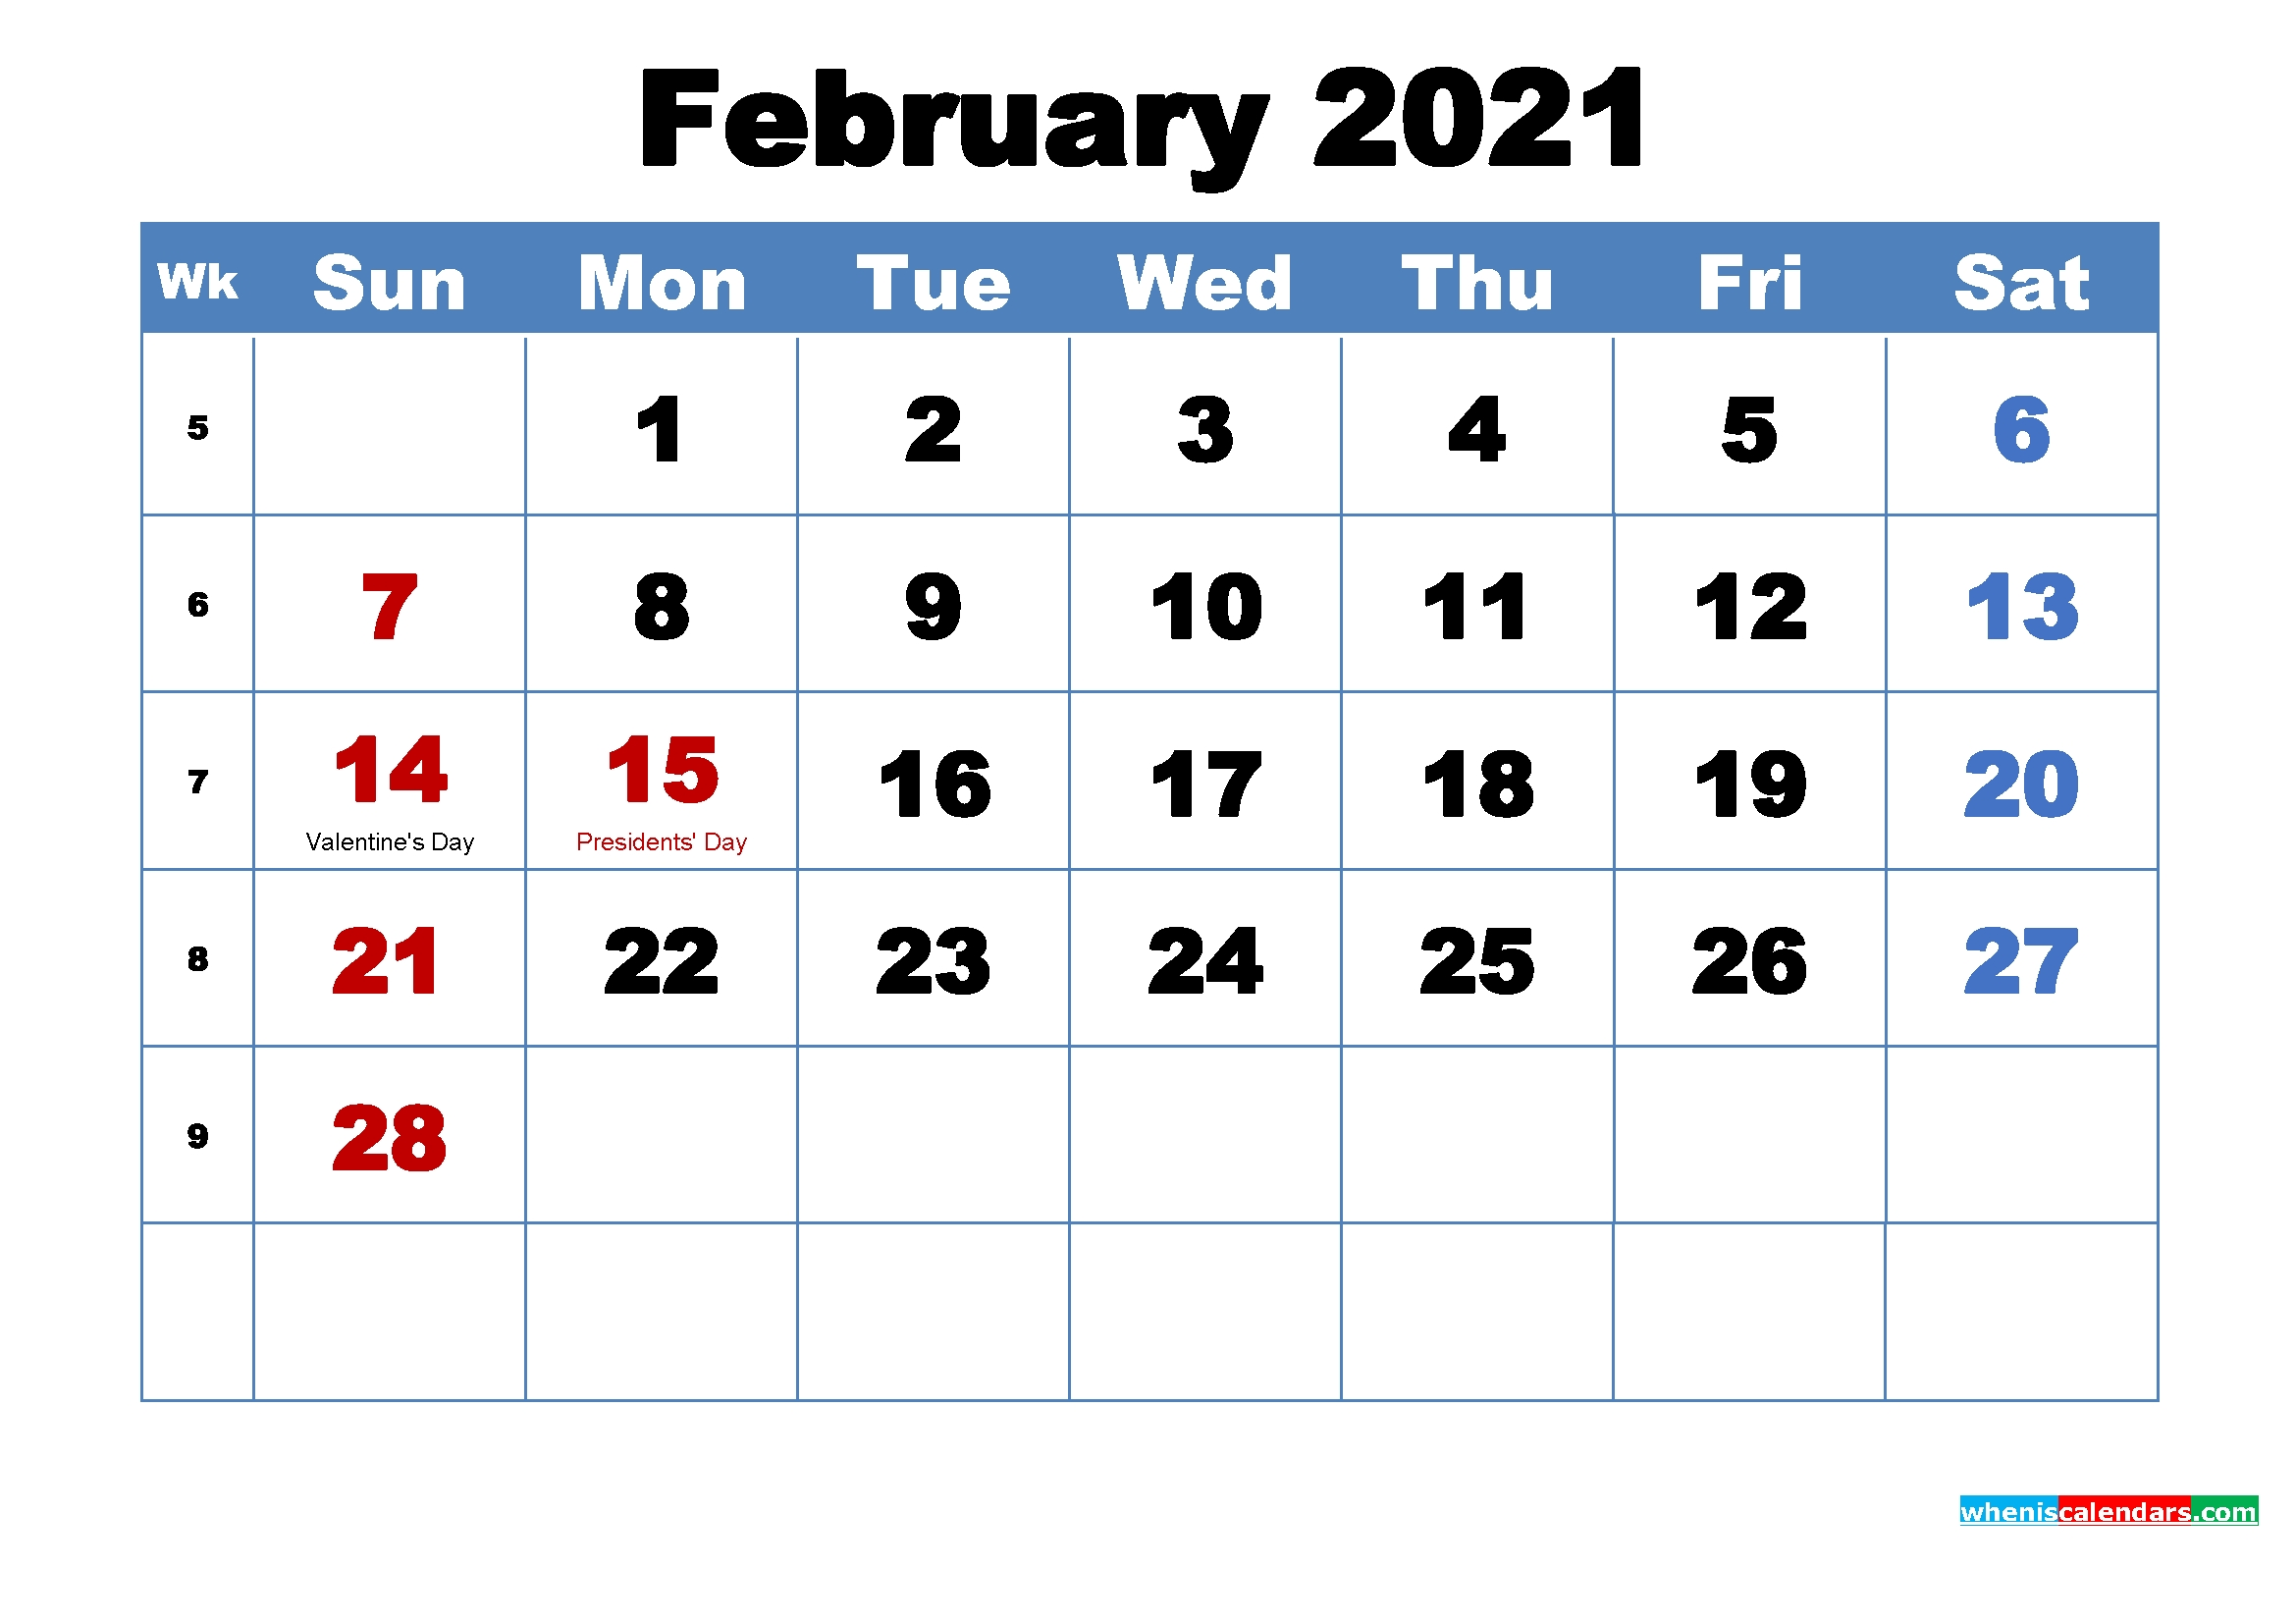 30 Free February 2021 Calendars For Home Or Office - Onedesblog